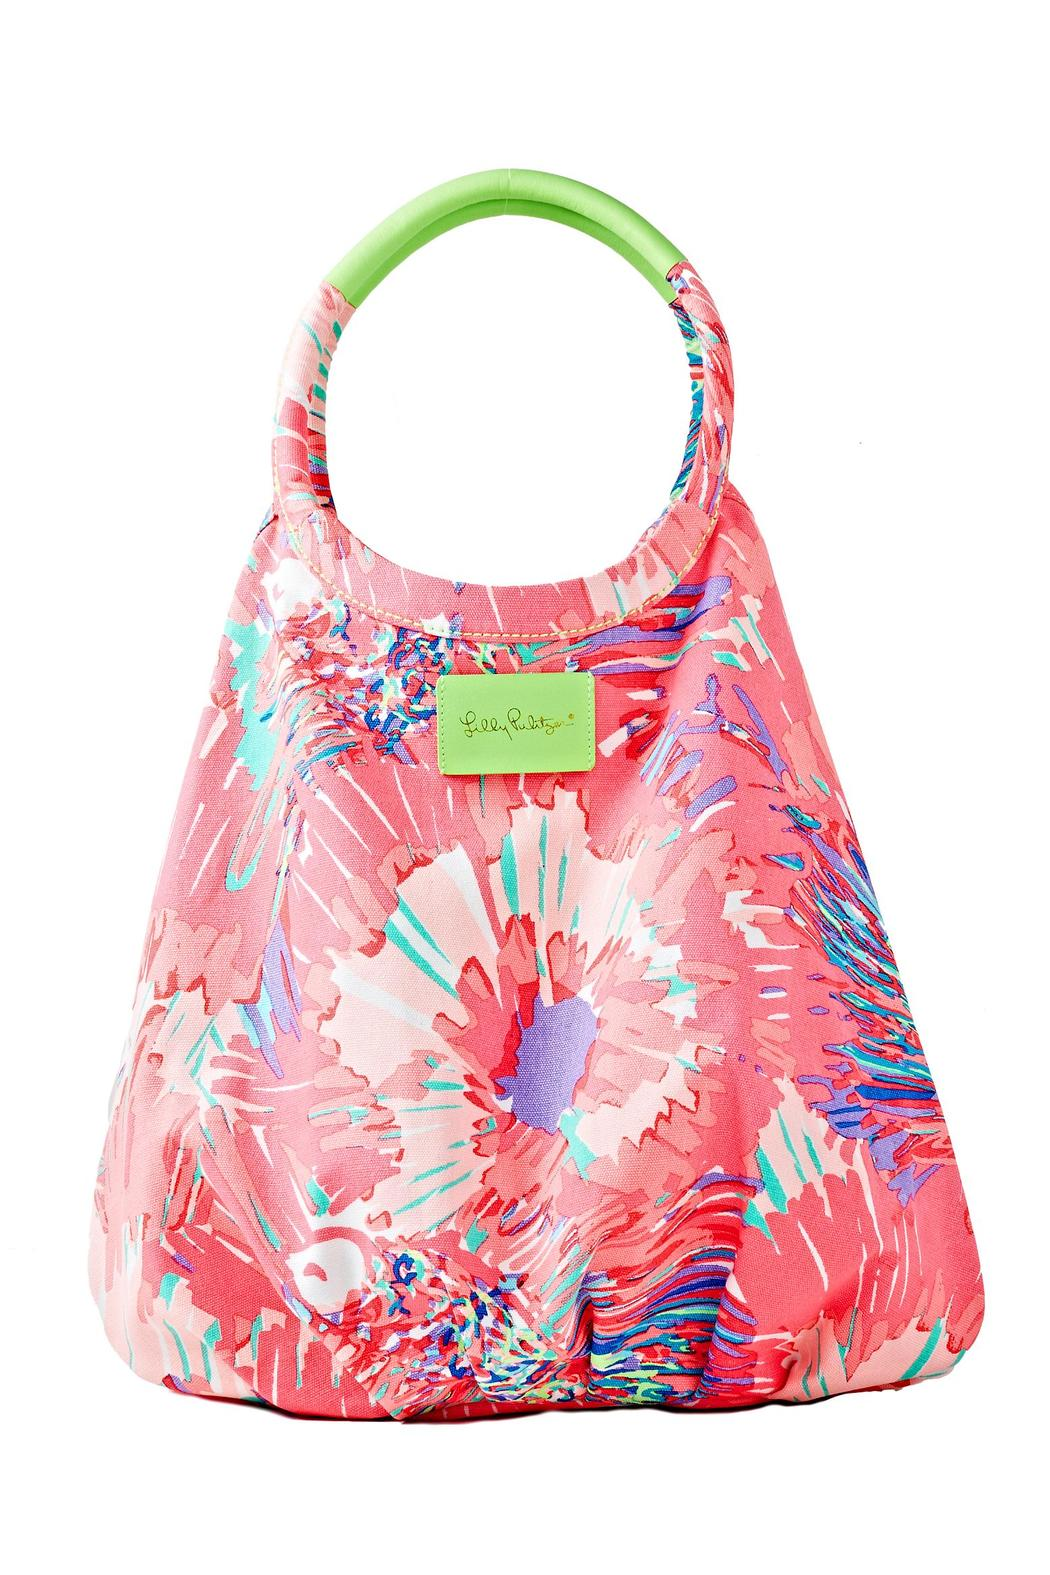 Lilly Pulitzer Bohemian Beach Tote Bag from Sandestin Golf and ...